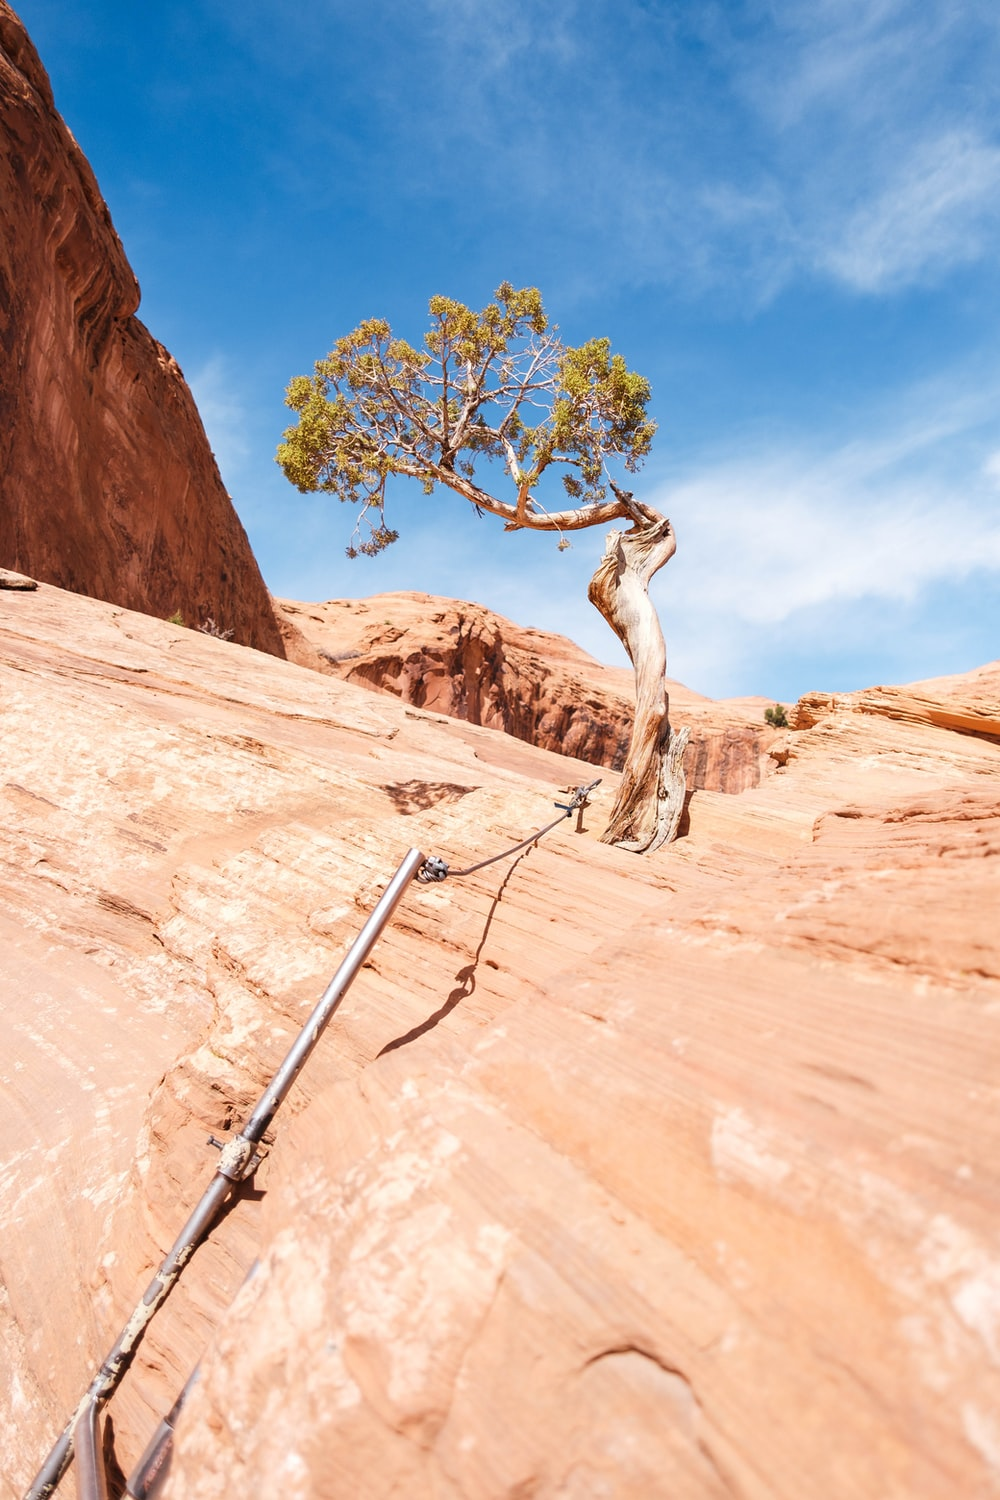 bare tree on brown rock formation under blue sky during daytime